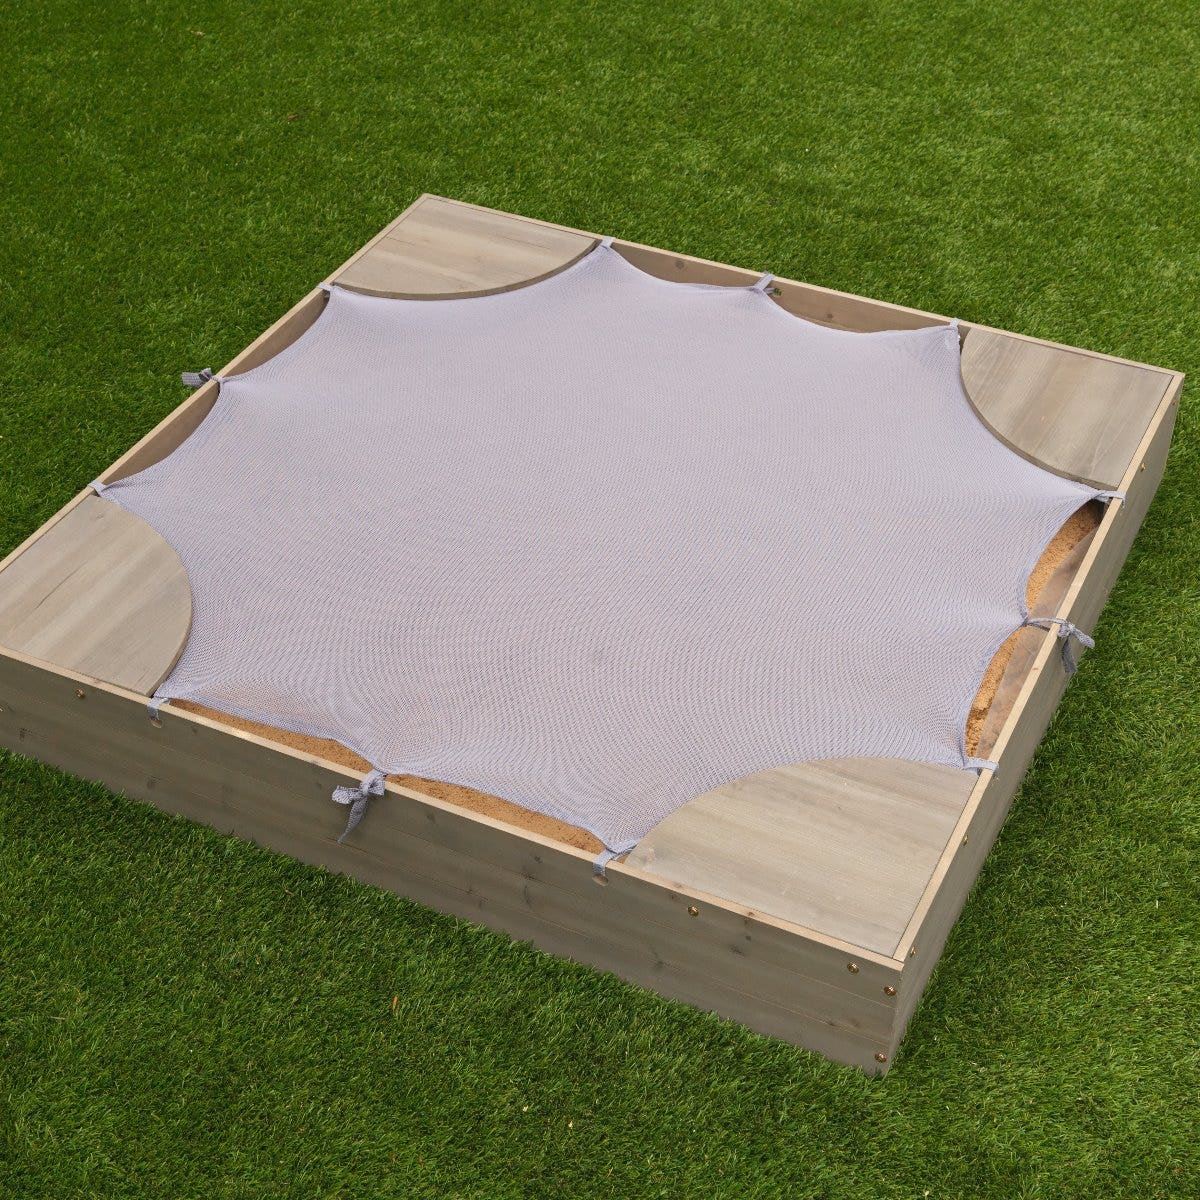 Mesh cover to protect sand